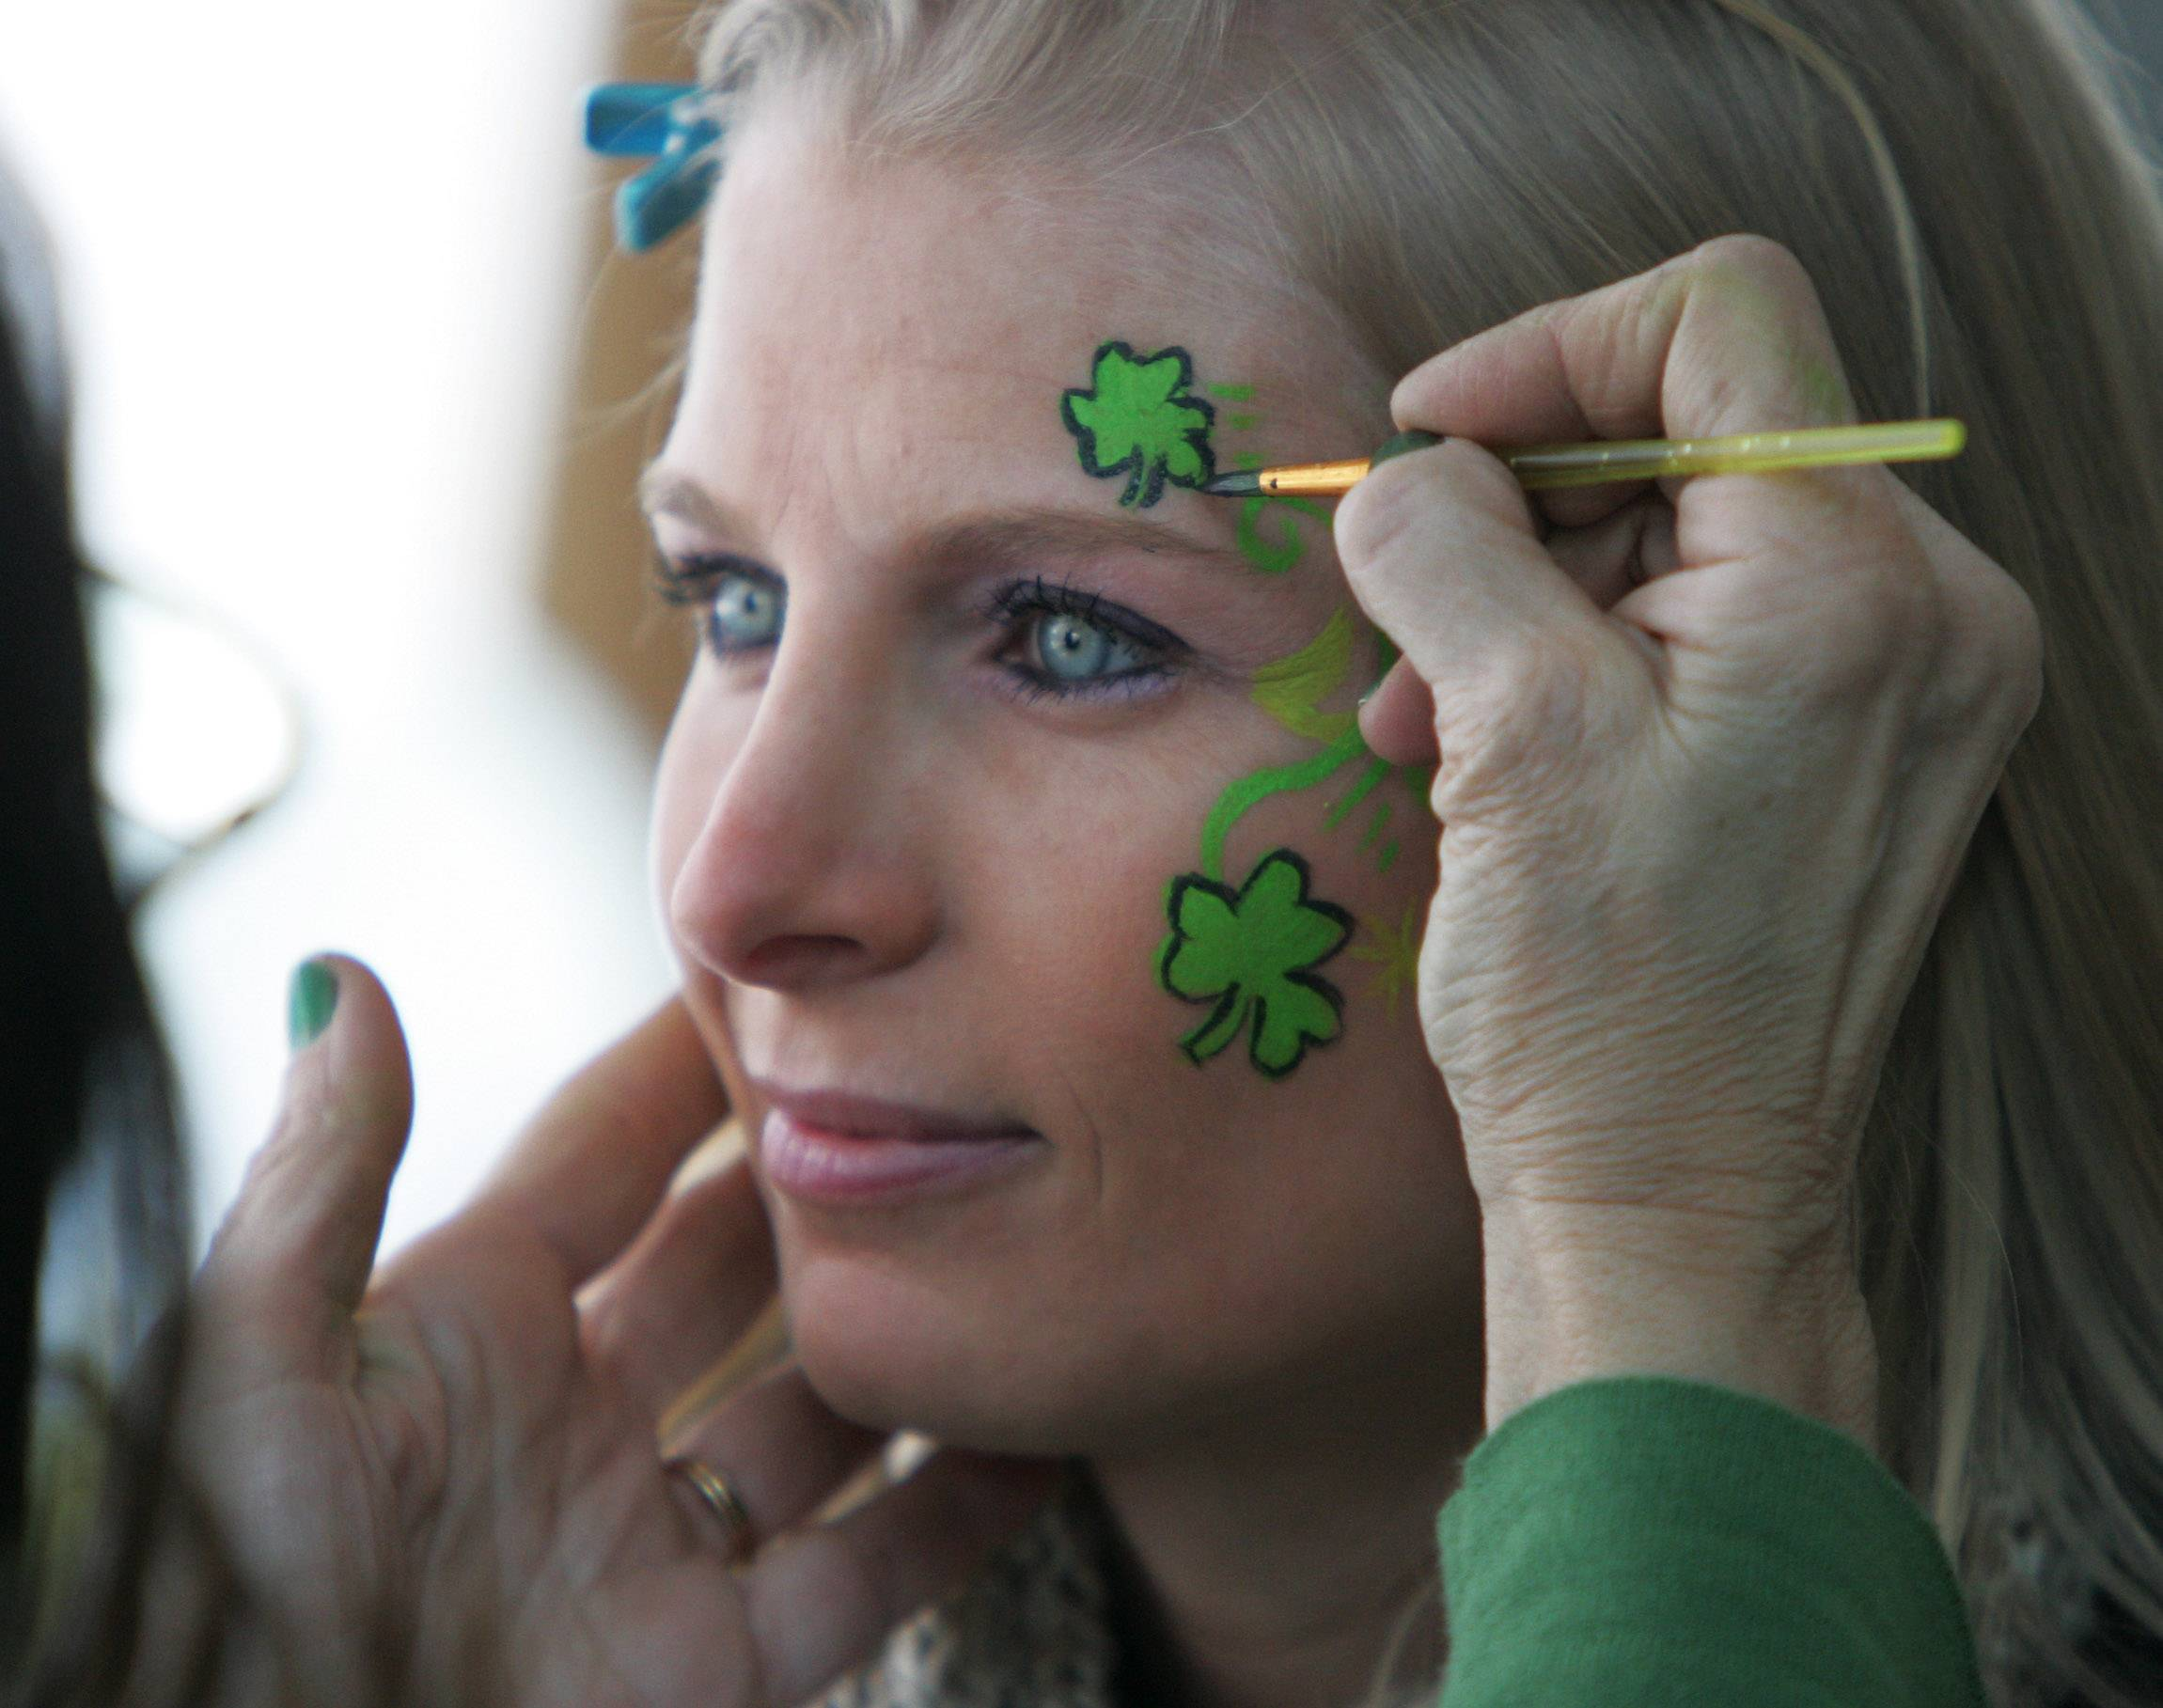 Vicky Molino of Barrington got into the Irish spirit during the 2013 Barrington Celtic Fest. The three-day festival returns this week with live music and entertainment, Irish cuisine and more in the village's downtown.